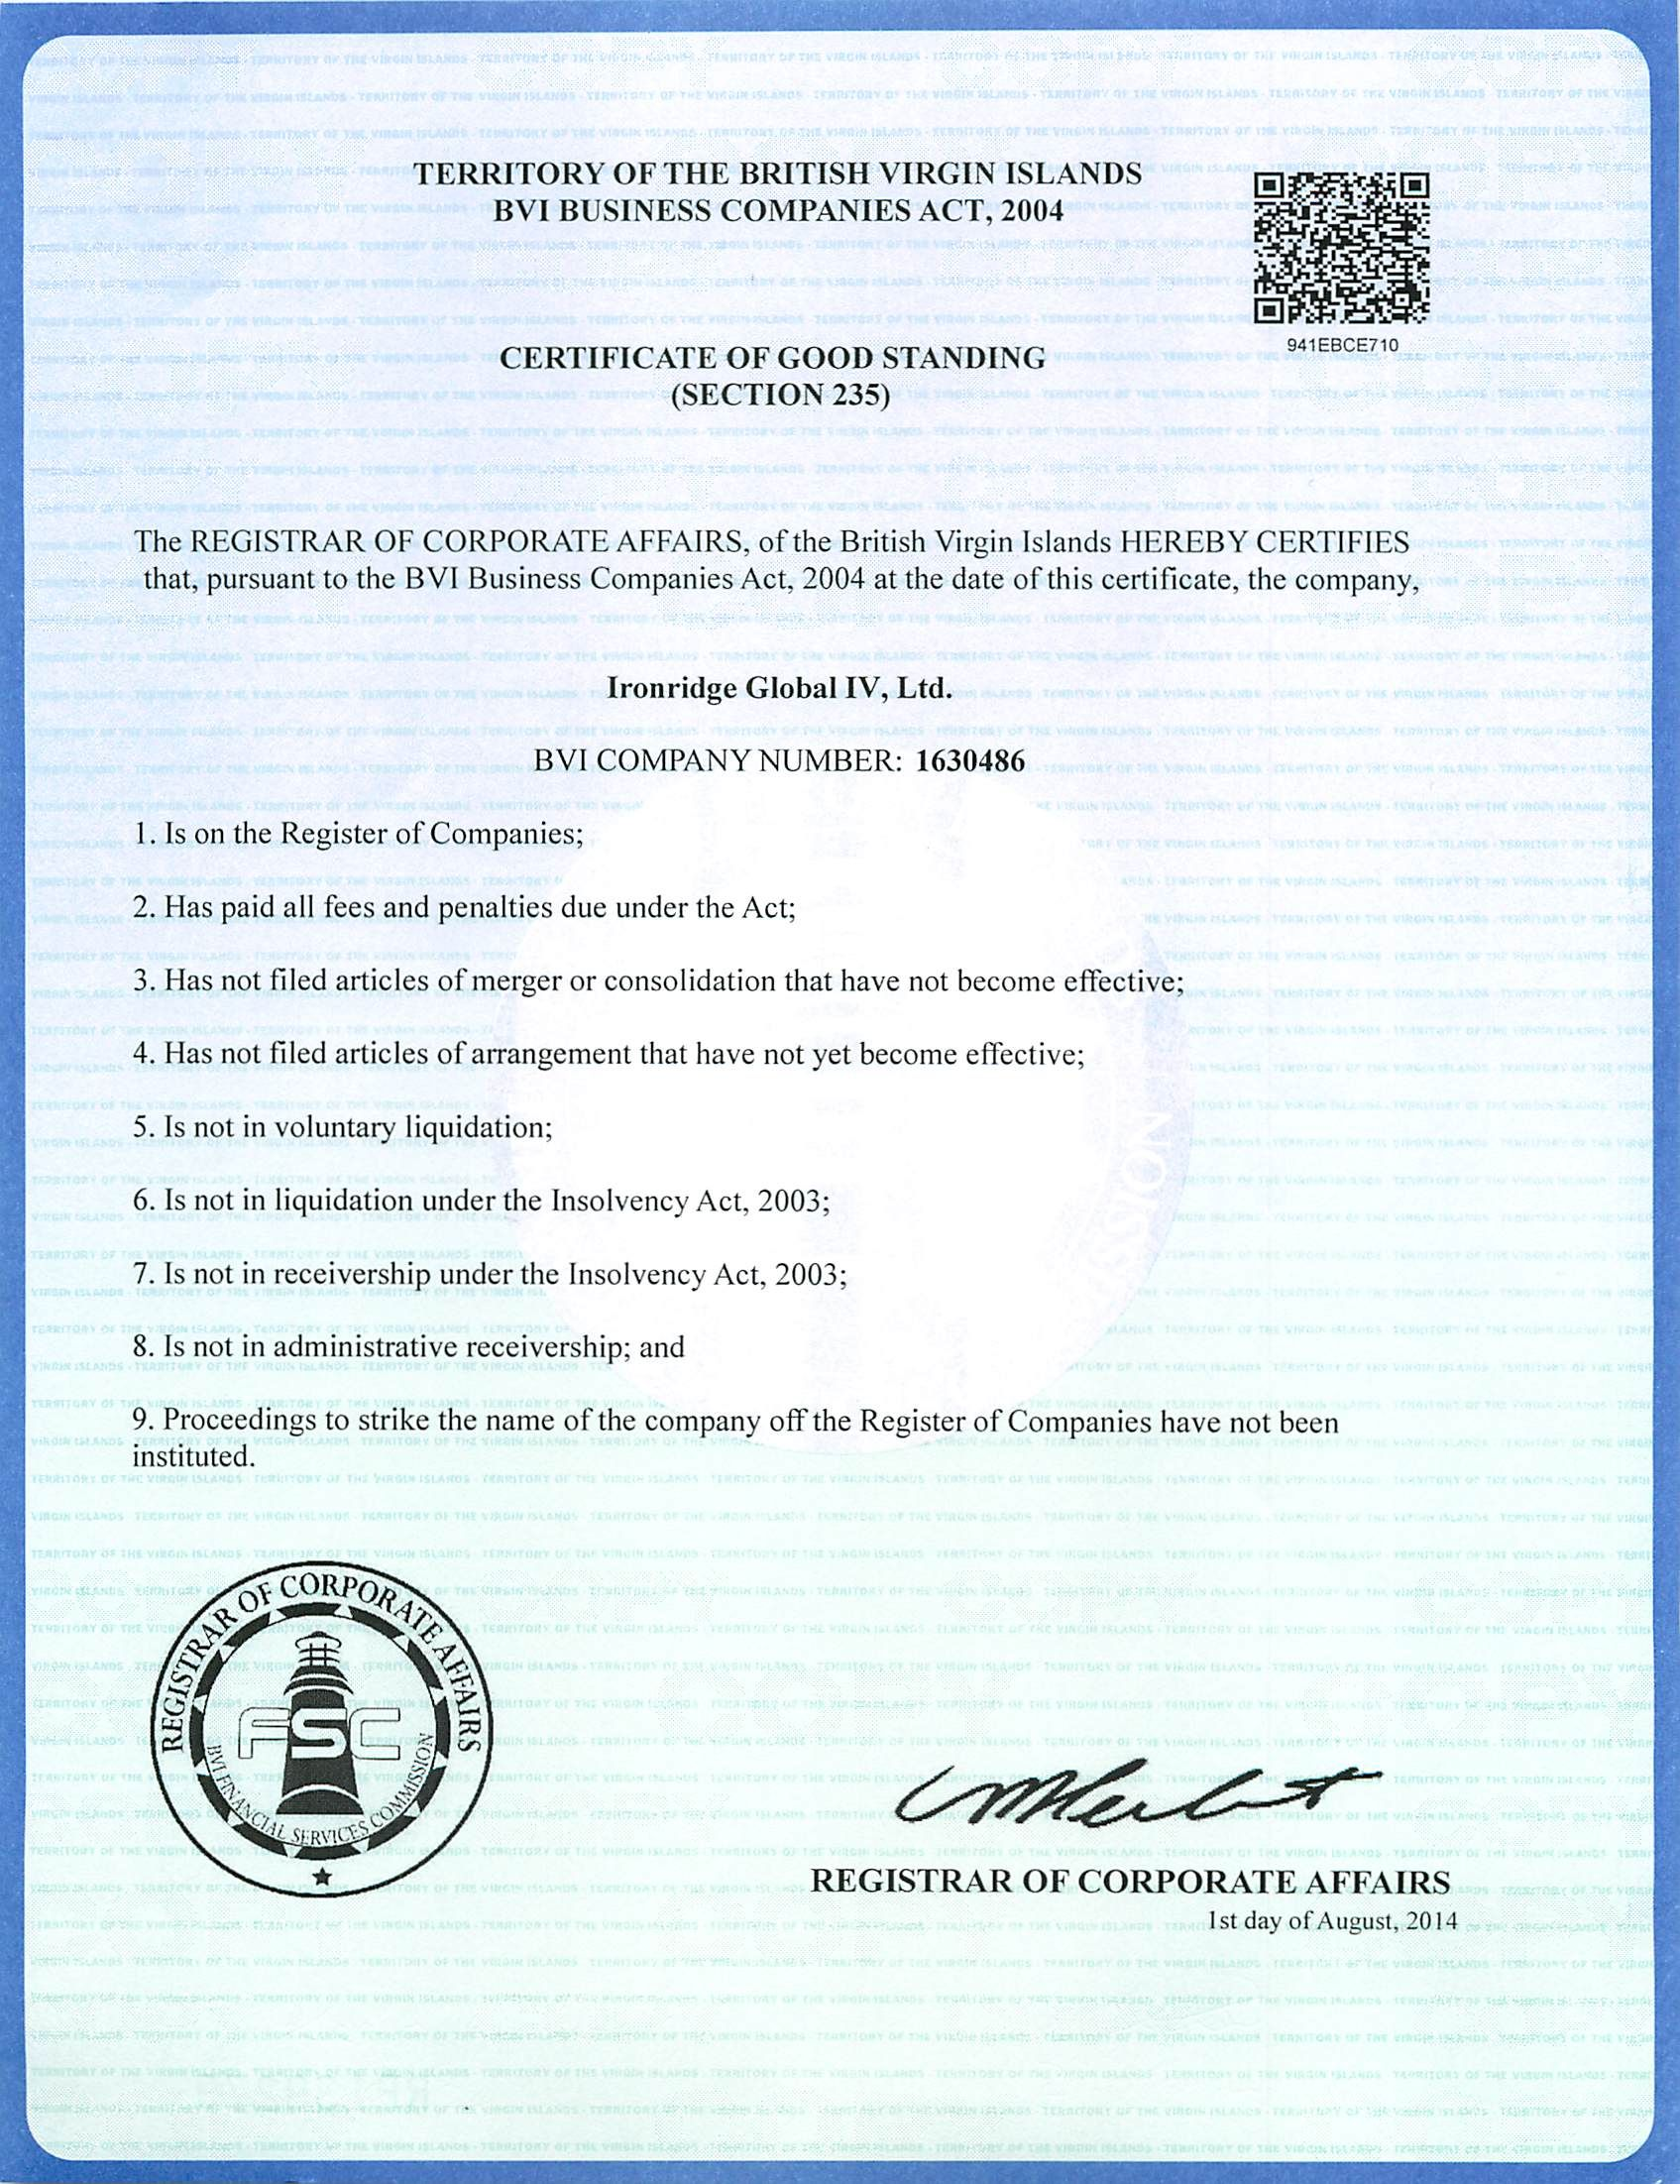 Certificate of good standing for ironridge global iv ltd from certificate of good standing for ironridge global iv ltd from the registrar of corporate 1betcityfo Image collections